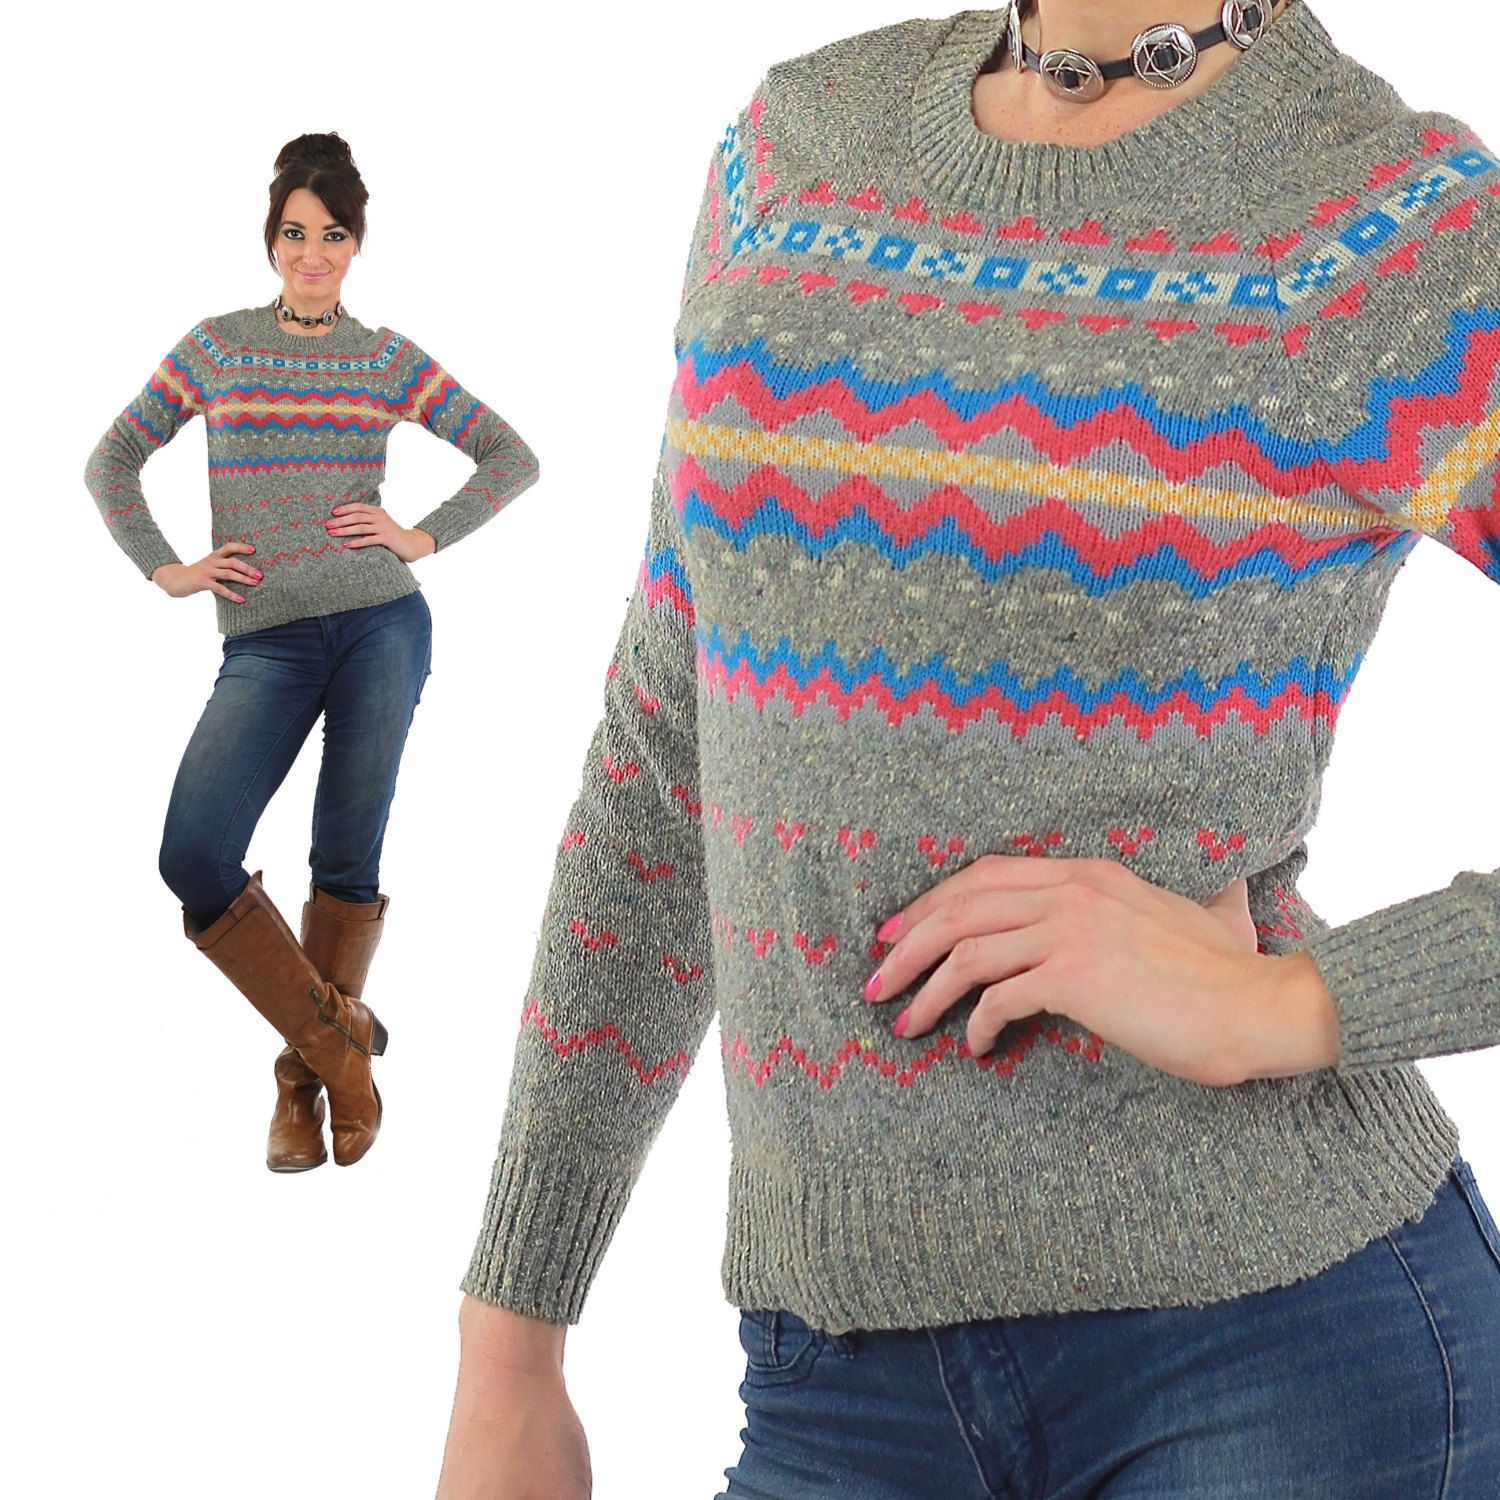 Ripped jeans flannel shirt  Geometric Sweater Gray Knit Striped Nordic Norwegian pink s Grunge